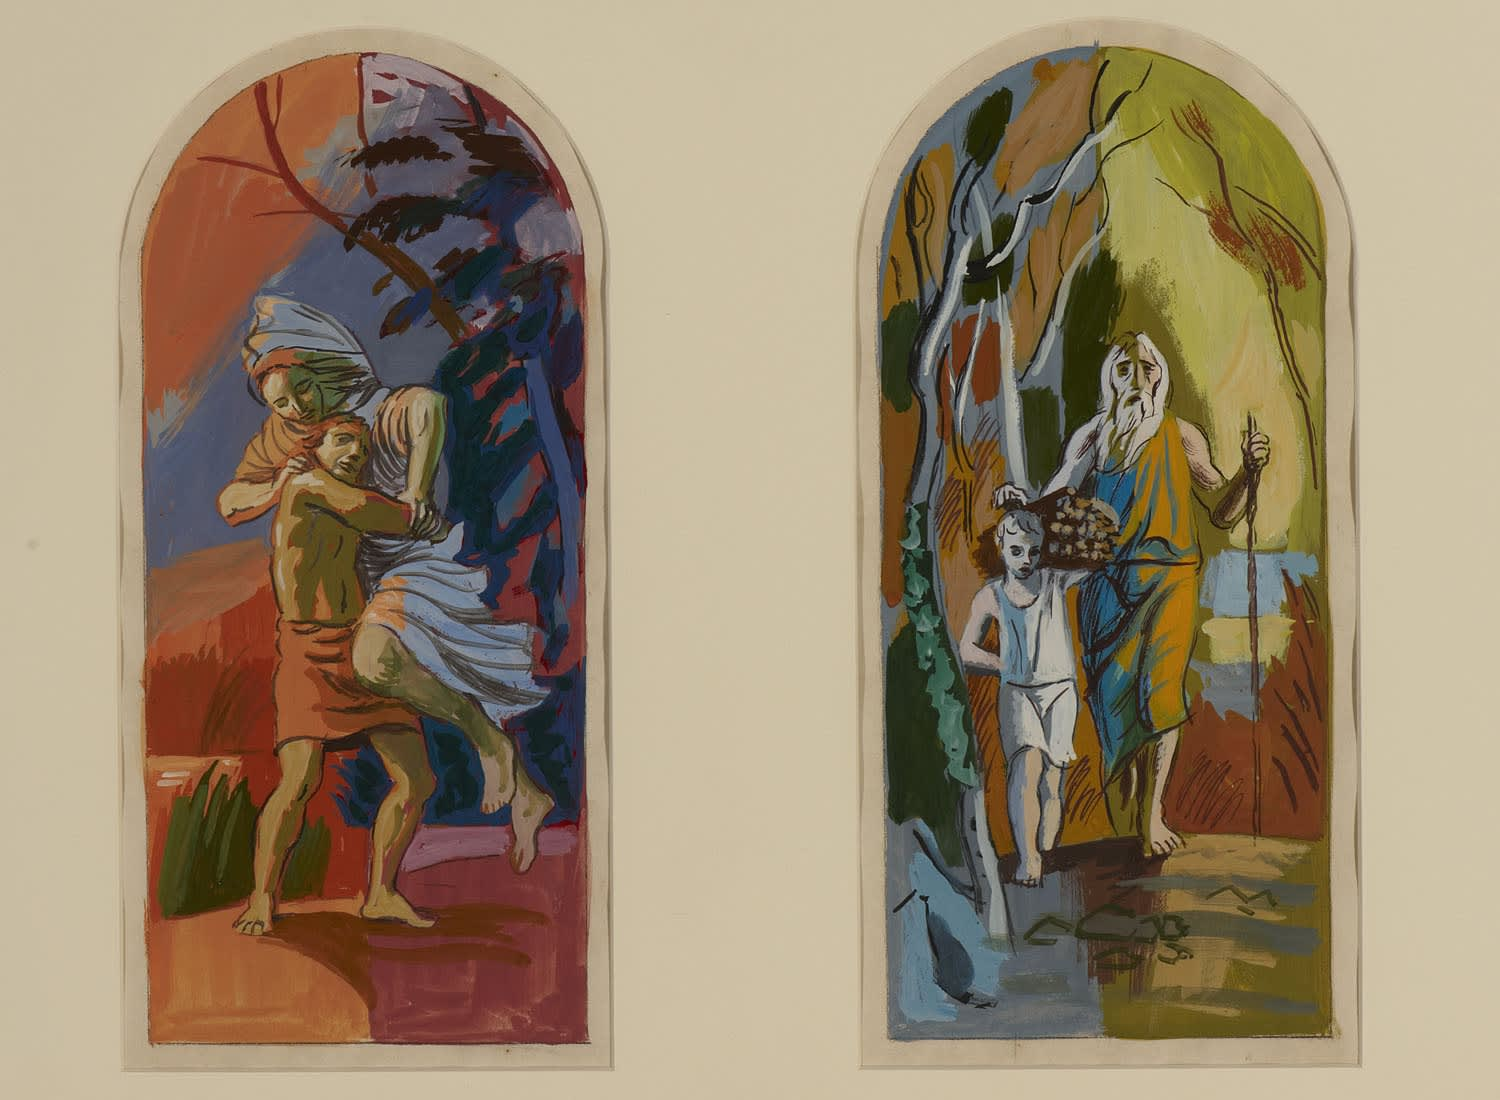 Hans Feibusch (1898-1998) Six Scenes from the Old Testament: Jacob Wrestling with the Angel (left) Abraham and Isaac (right) n.d. Gouache on paper 31.5 x 15 cm Ben Uri Collection © Hans Feibusch estate To see and discover more about this artist click here